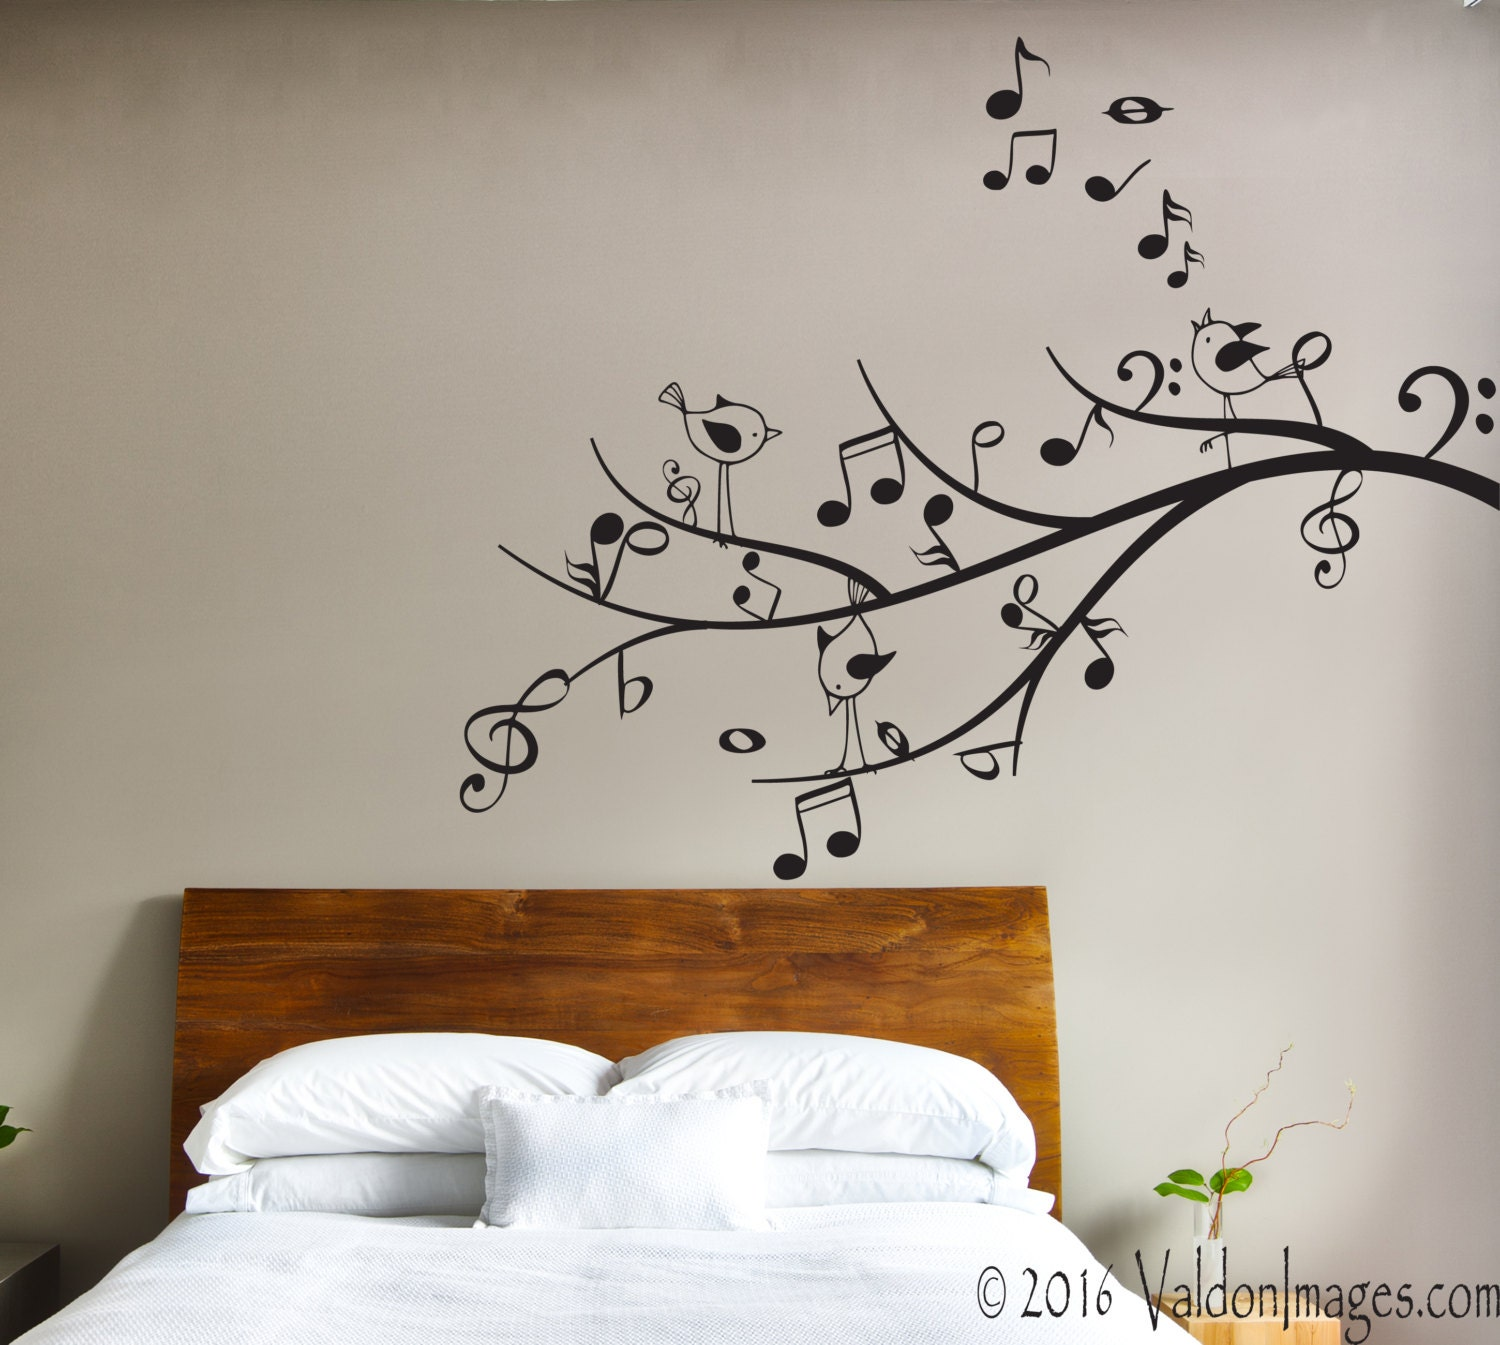 Music Tree Wall Decal, Bird Wall Decal, Music Decor, Living Room Wall Decal Part 79